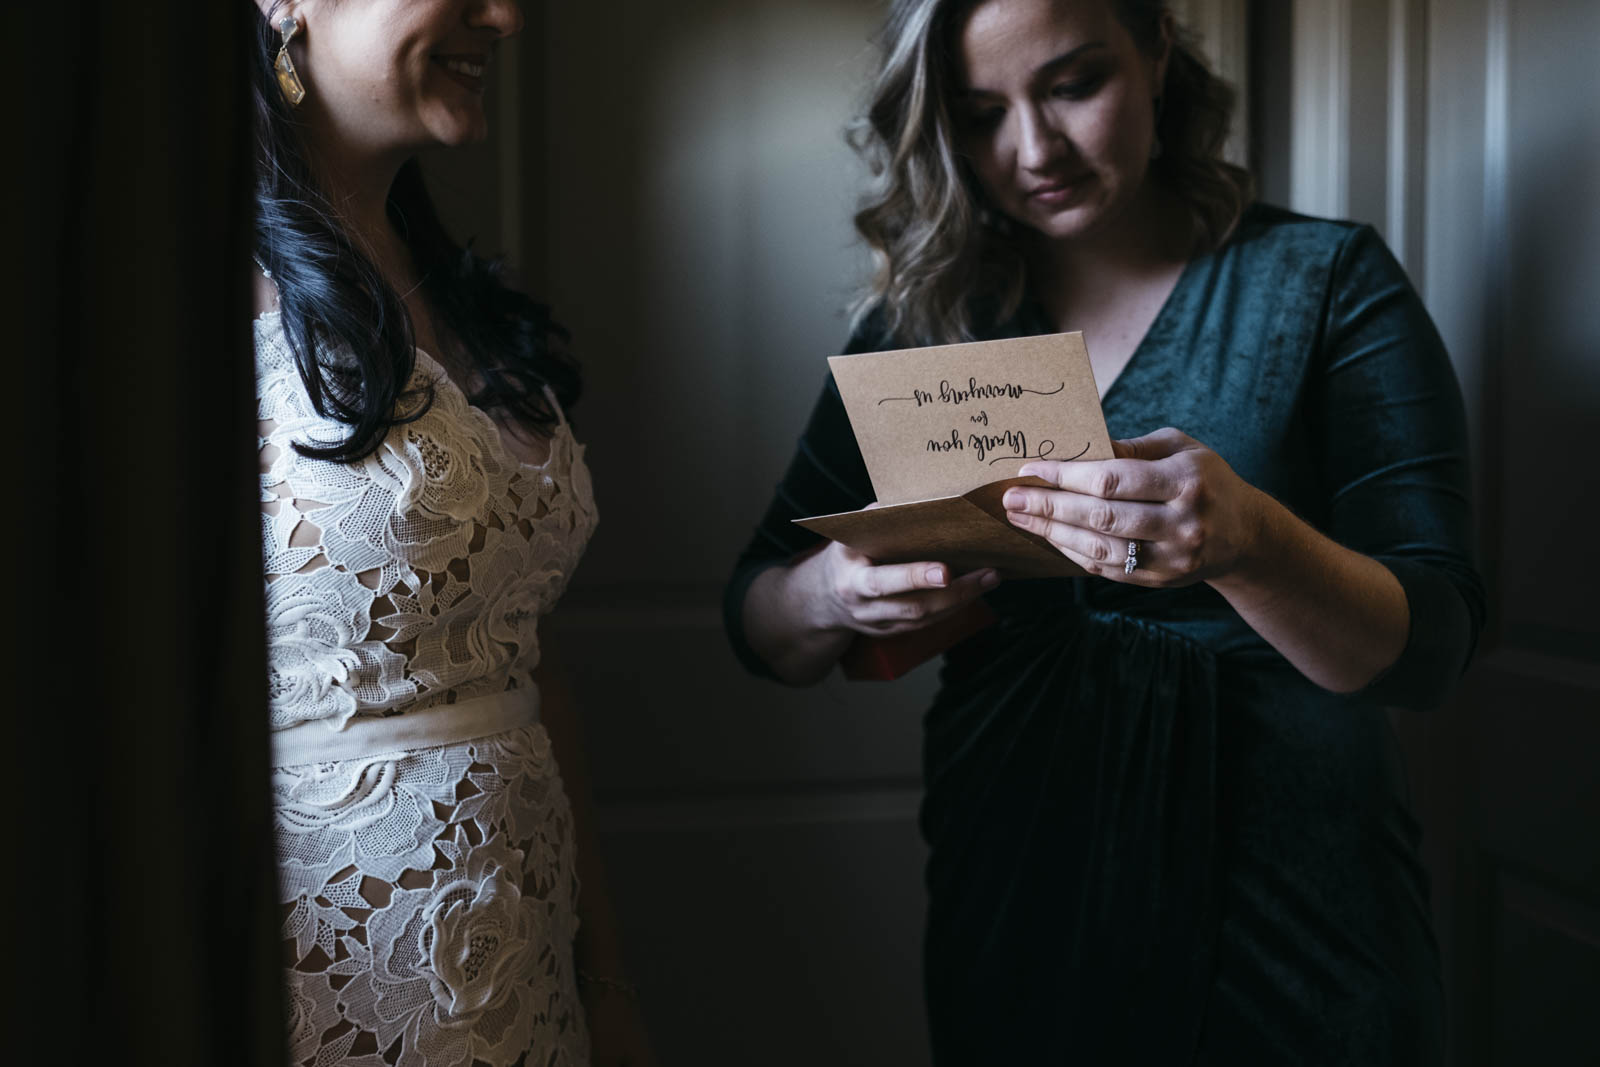 Bride giving her Maid of Honor a gift on her wedding day.